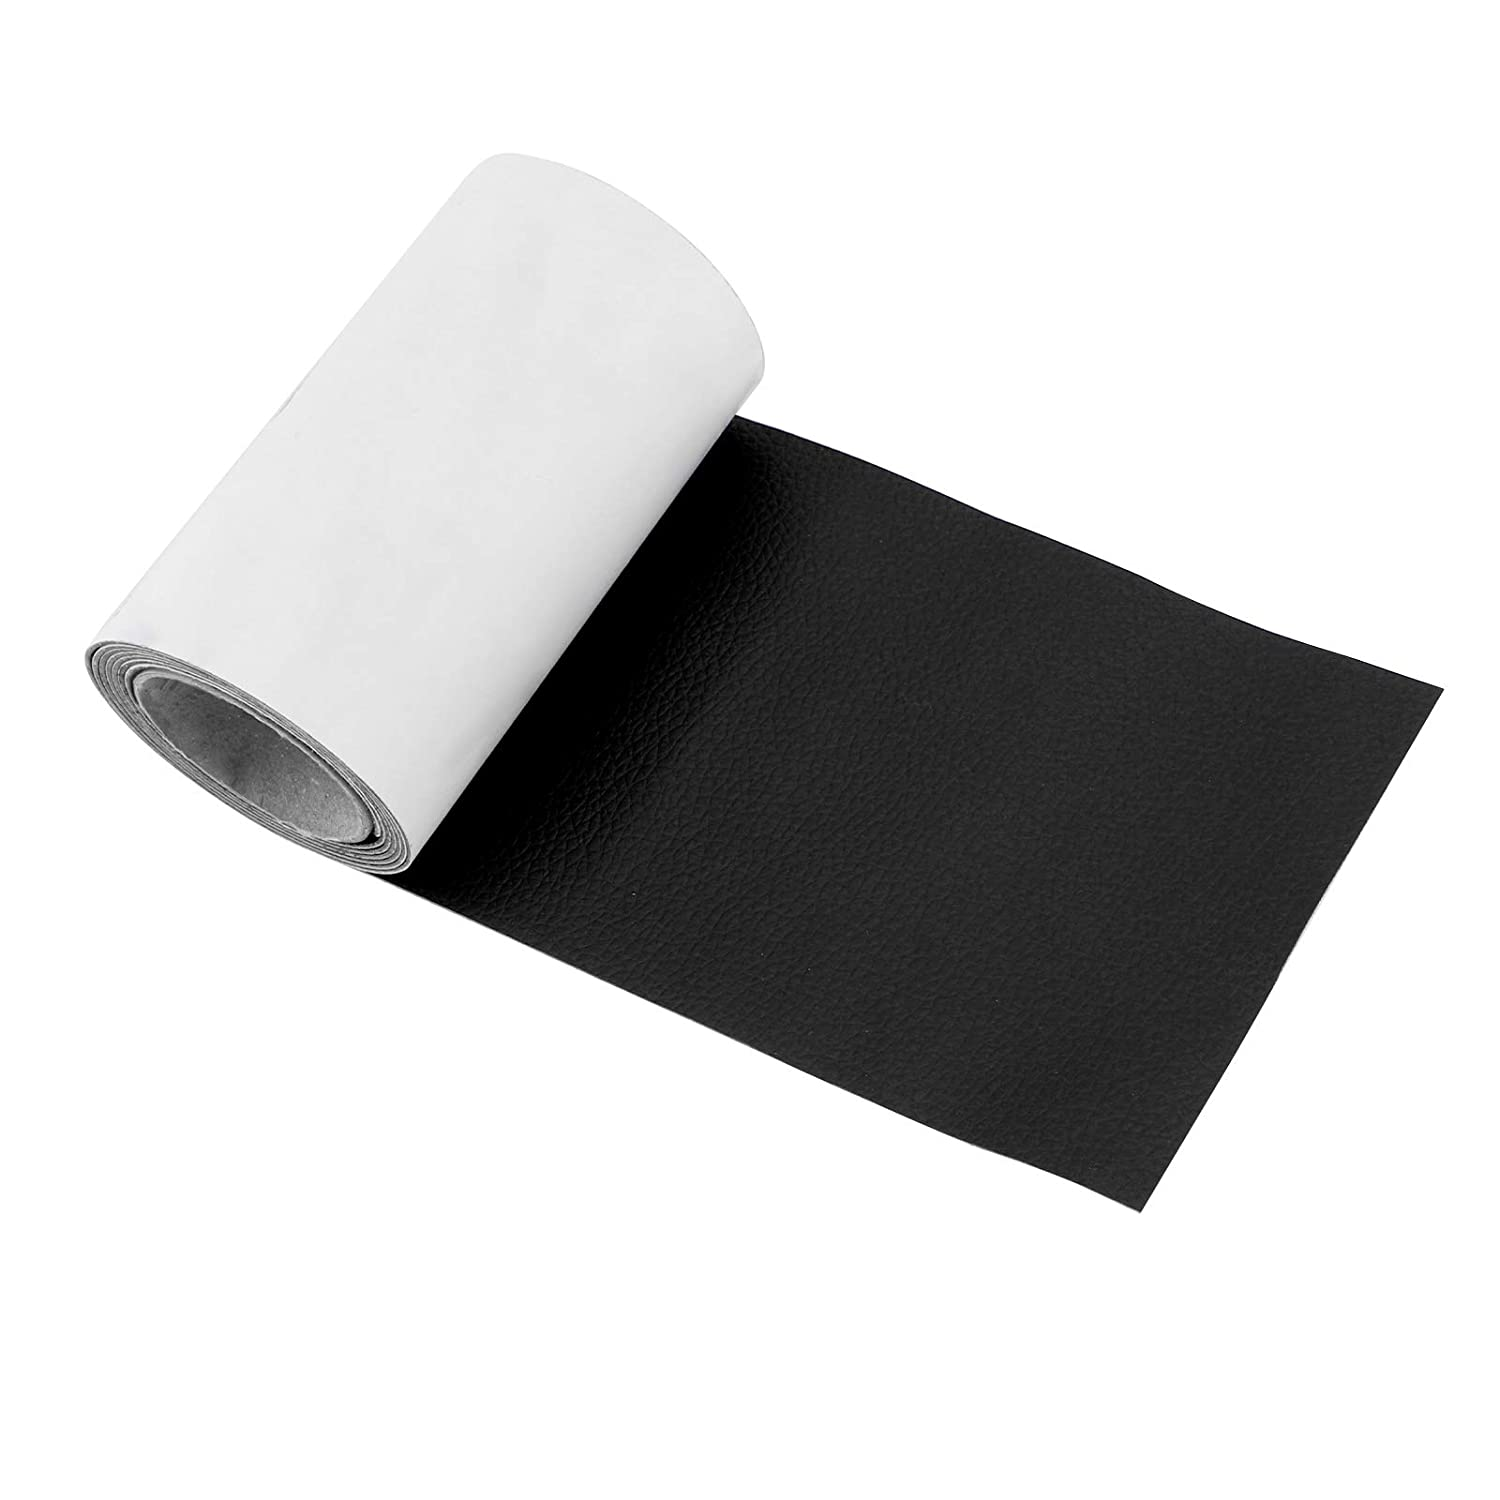 Jackets AIEX 4x47 Inch Leather Repair Tape Self-Adhesive Leather Repair Patch for Couch Handbags Car Seats Black Sofas Furniture